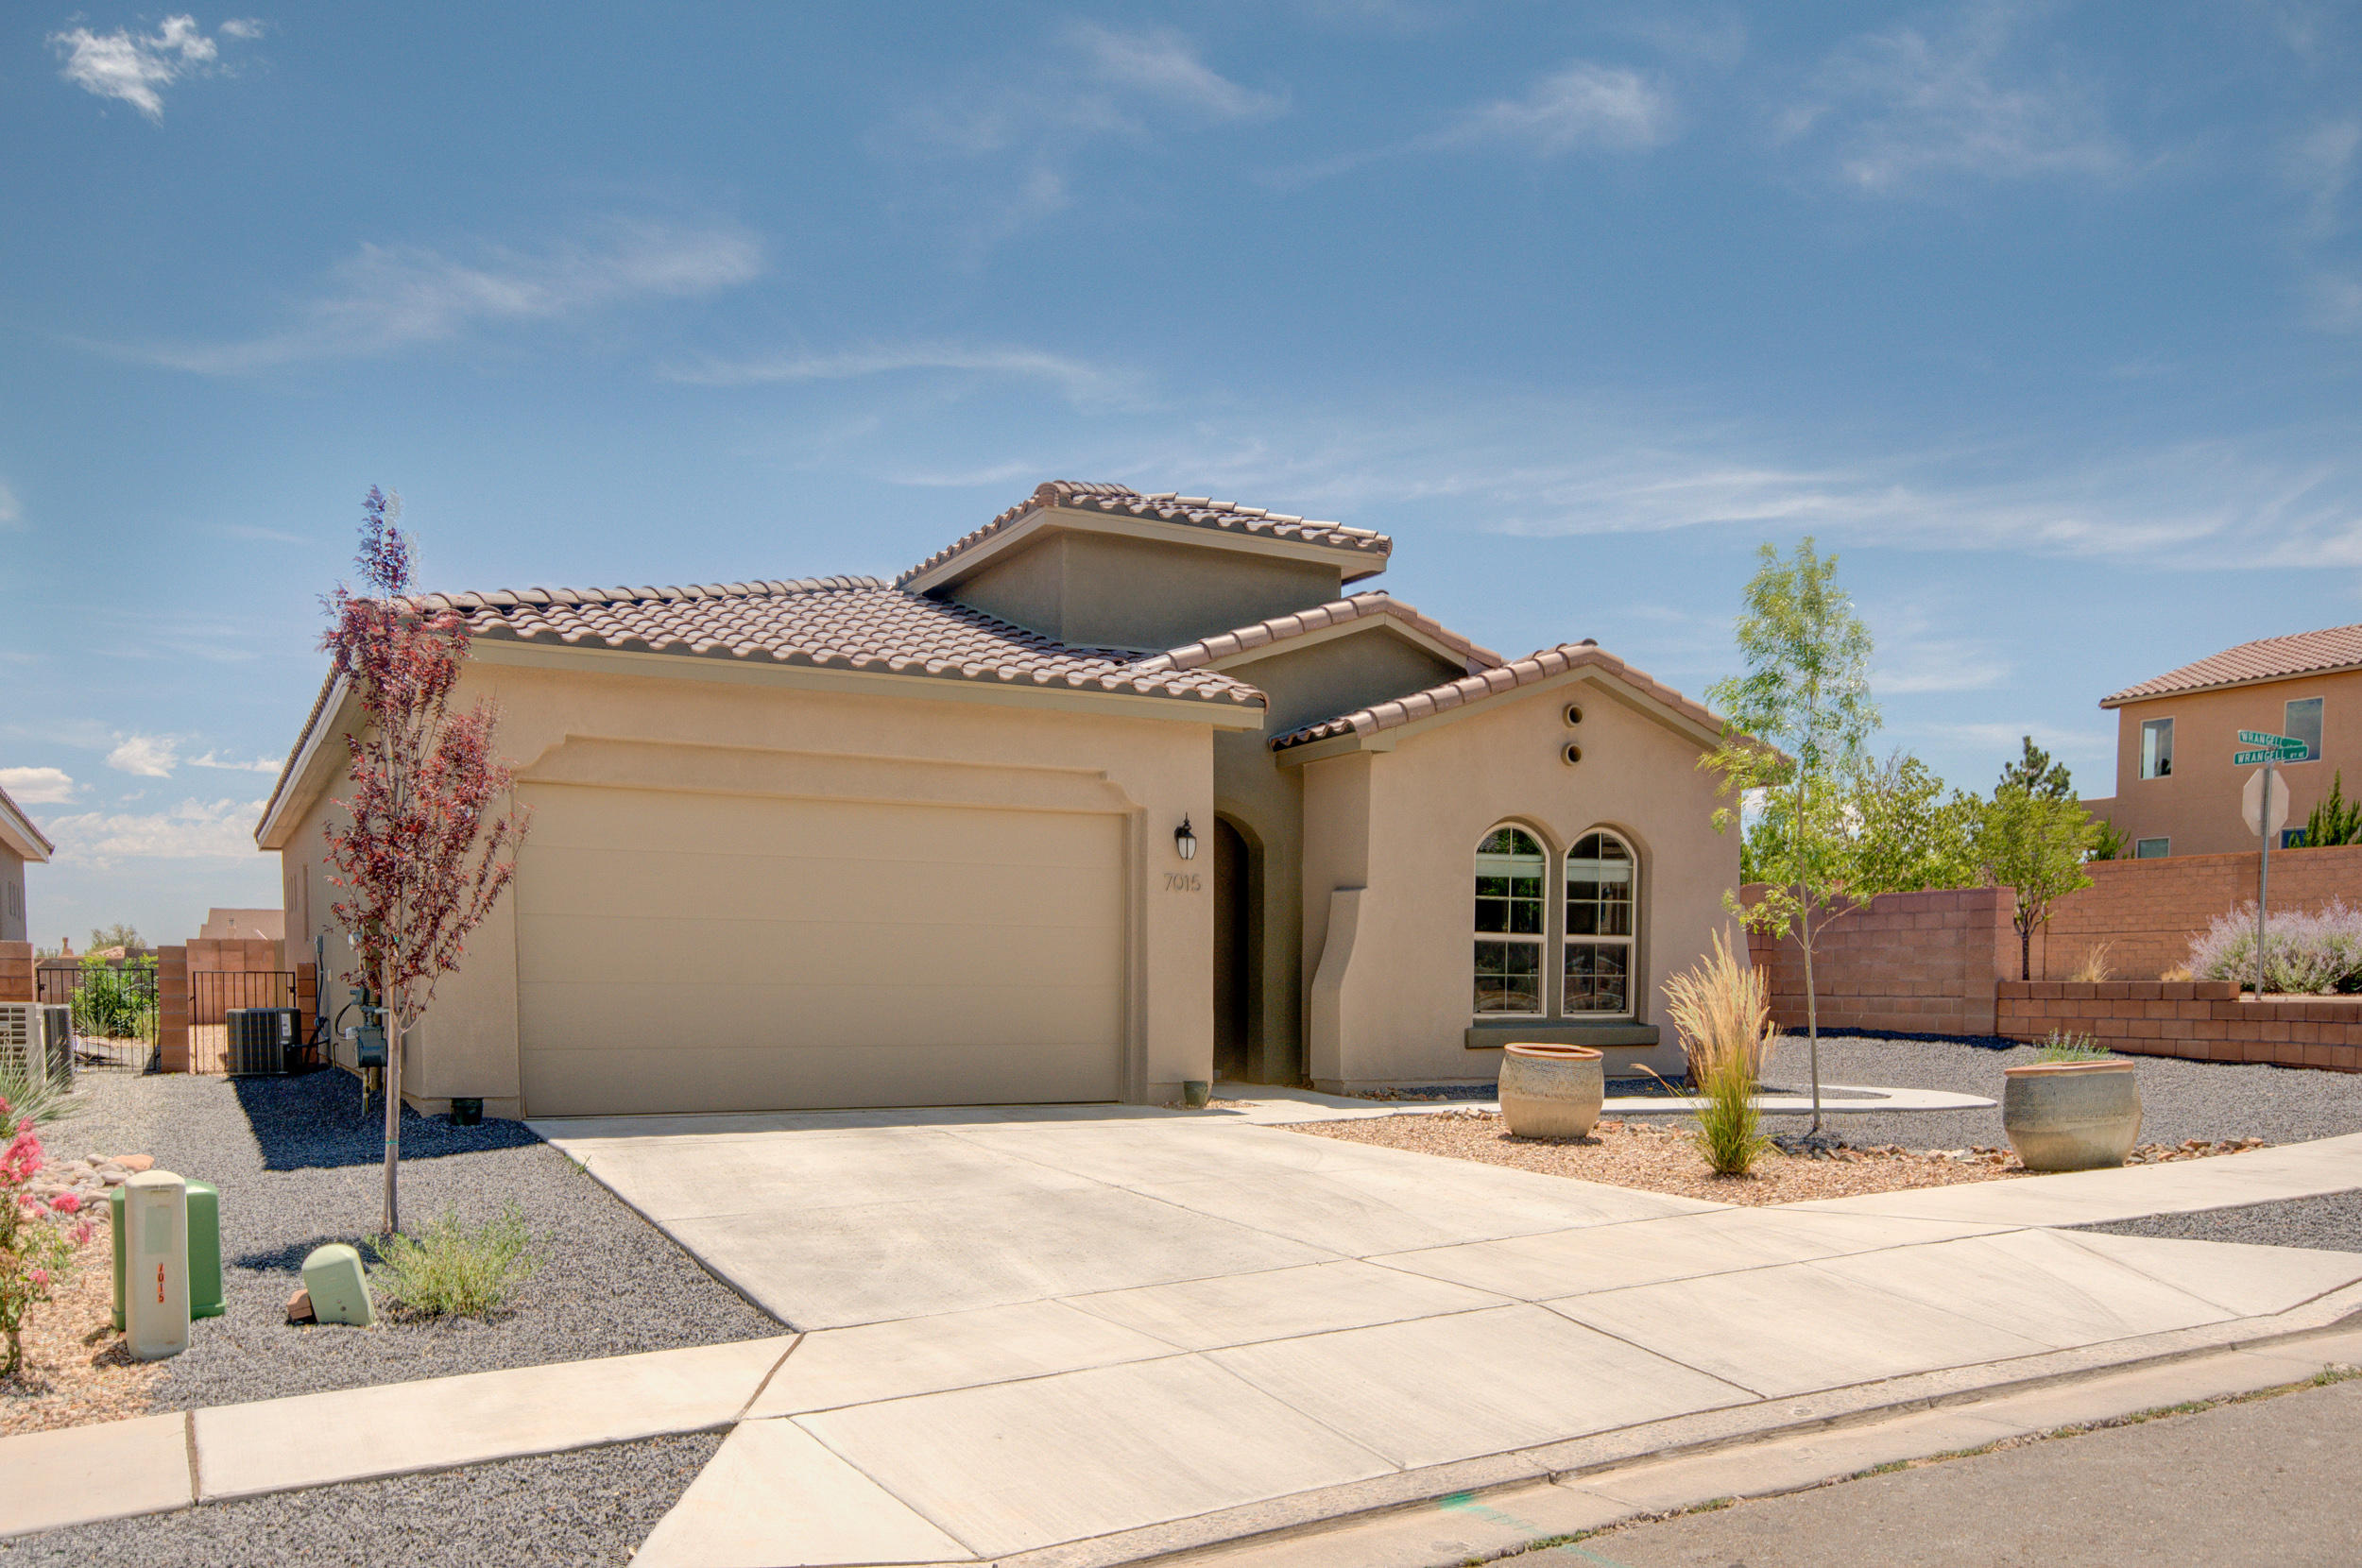 Corner lot with Mountain Views! This Beautiful 1 year old Hakes Brothers Home located in the Lomas Encantadas neighborhood features $60,000 in upgrades. Gourmet kitchen with beautiful white cabinets, granite counter-tops, tile backsplash, Whirlpool appliances, quartz stacked stone, oversized Island with 4 person seating, fireplace, tile flooring throughout the home. Navien instant hot water. Open floorplan perfect for entertaining. Tray ceilings in living room and master. 9ft ceilings in bedrooms and 12 ft ceilings in the living, kitchen, and dining room. Master suite with private bath, dual sinks, a large walk-in shower with tile surround, linen closet and large walk-in closet! Outside enjoy the extended covered patio with dog run! Schedule a tour today as this home will sell quickly!